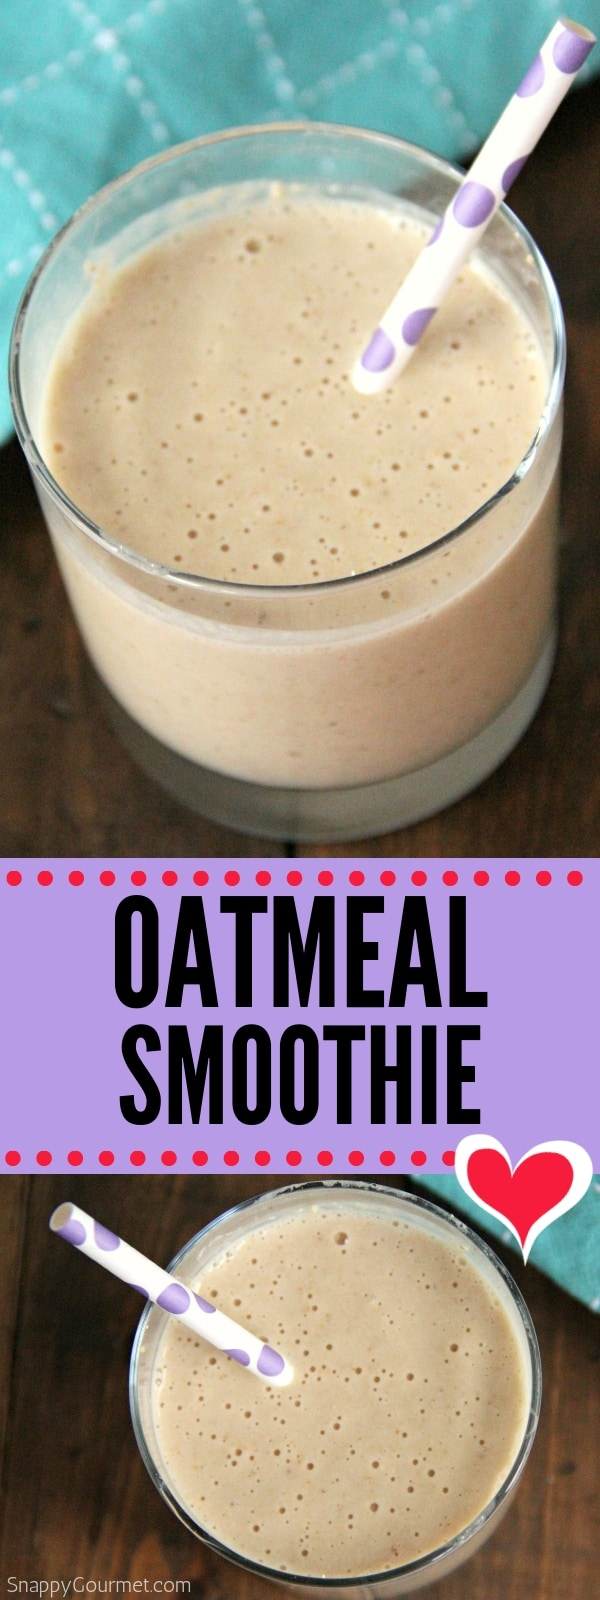 oatmeal smoothie photo collage